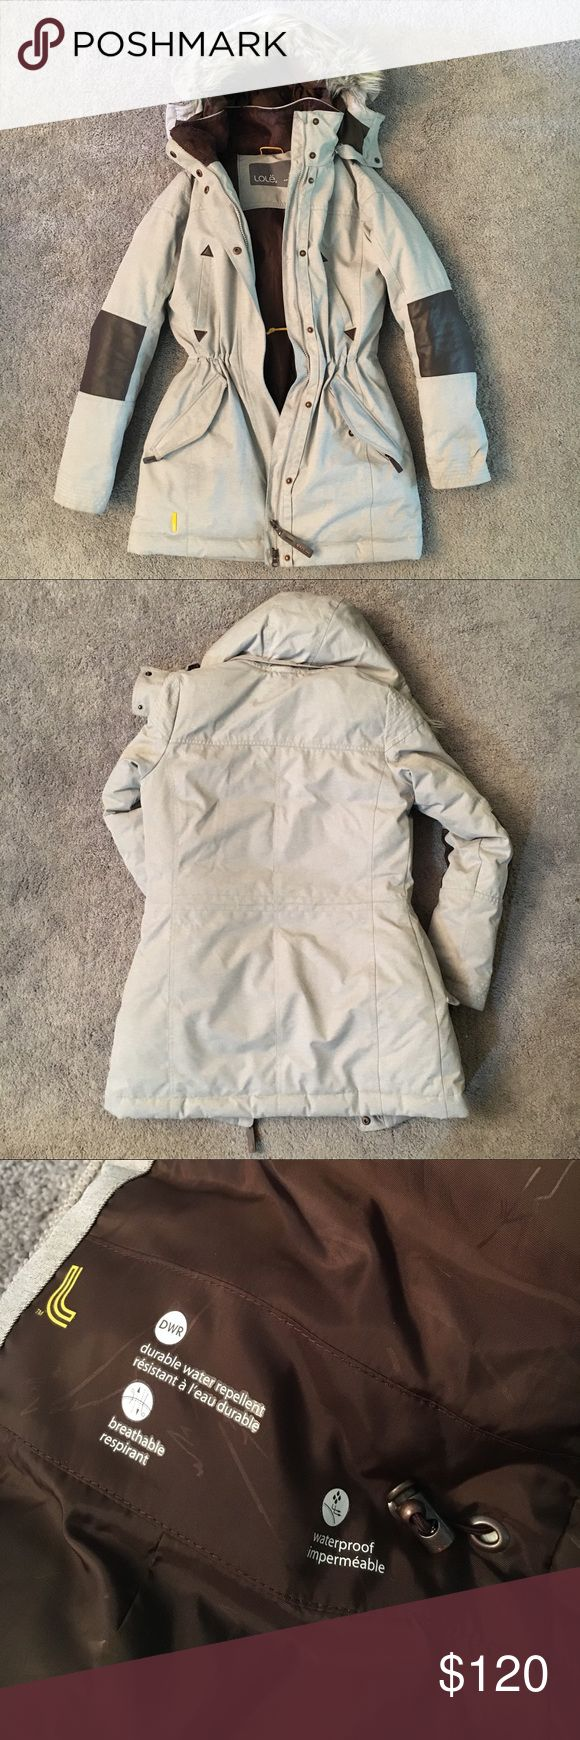 LOLE Down Winter Coat w/ Fur Trim Hood, XS Excellent, barely worn condition with a flattering fit and so many impressive details!  Made of extremely durable materials; Waterproof & water repellent; 60% duck 40% feather; Double direction front zipper + snaps; Warm, fabric-lined pockets 2 w/ zip + snap, 2 open chest pockets and 1 interior w/ zip; Detachable hood w/ detachable fur trim; Inner waistline cinch; Leather-like Dk brown elbow patches... Really so very cute, please ask questions, I…